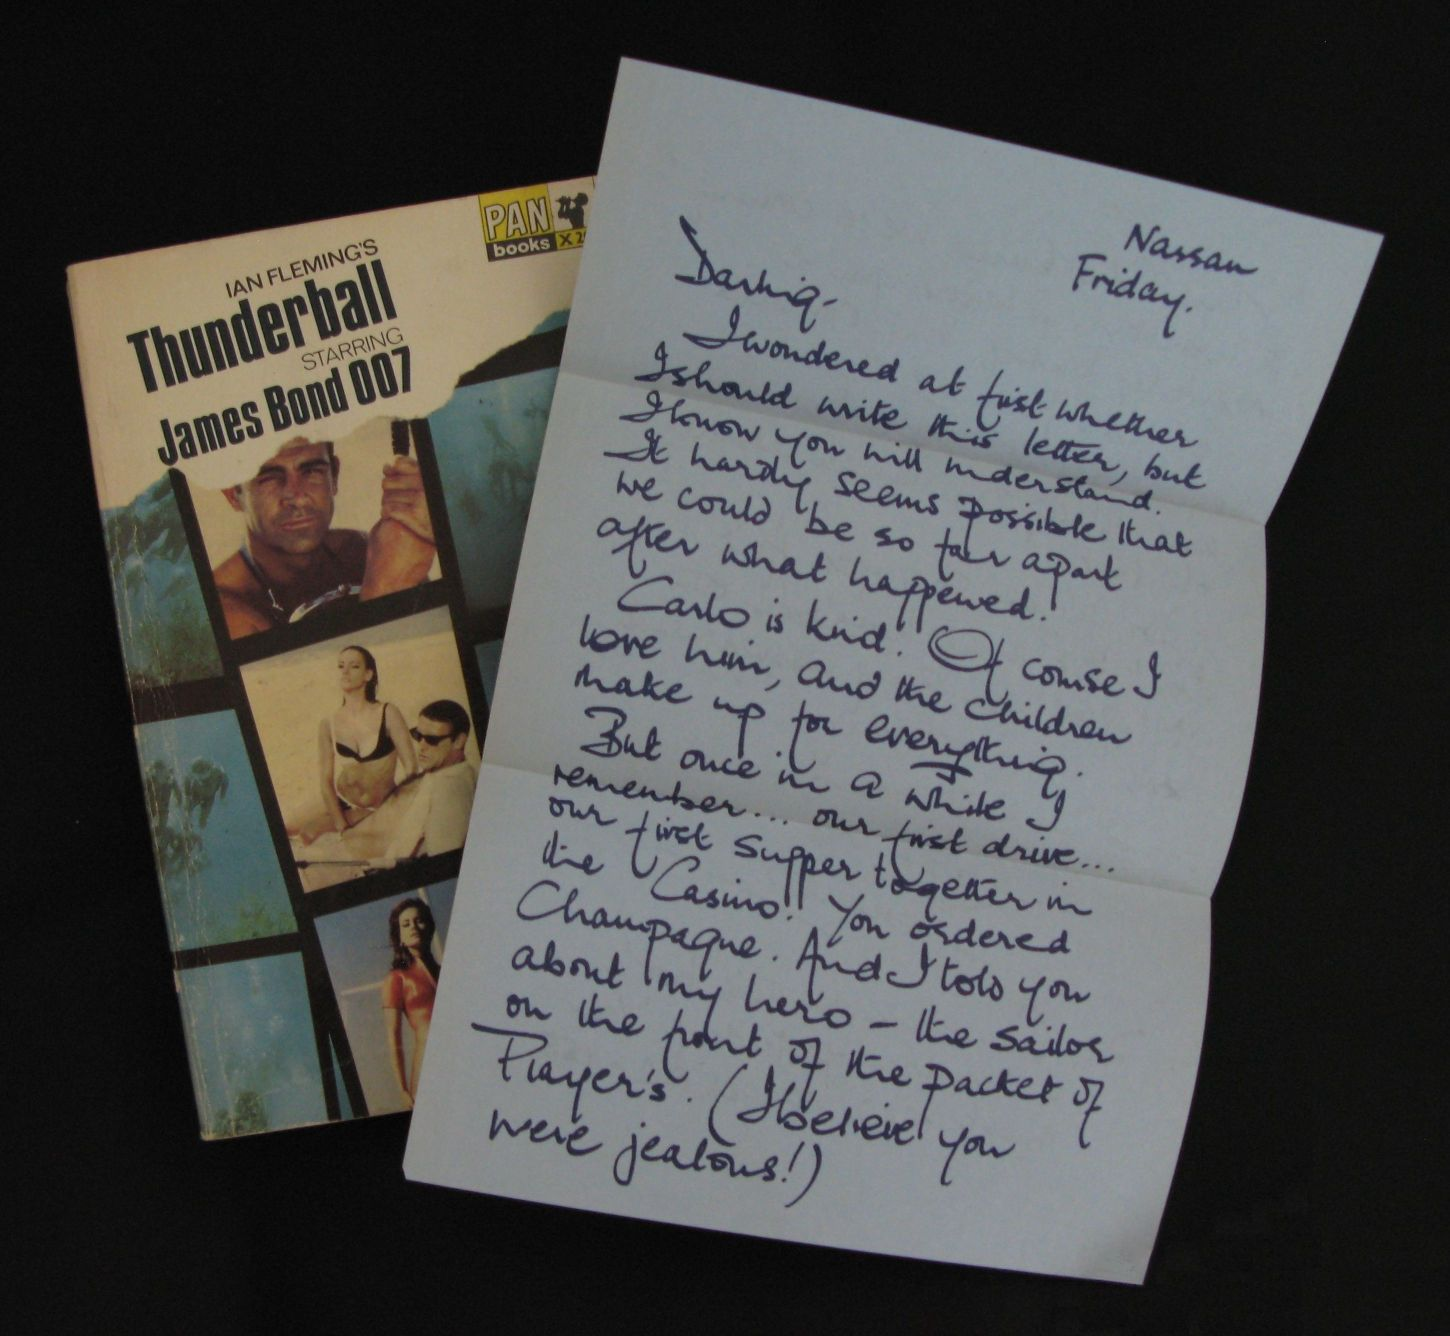 A letter from Domino included in the initial Pan paperback tie in novel. It was in reality an ad for Players cigarettes.